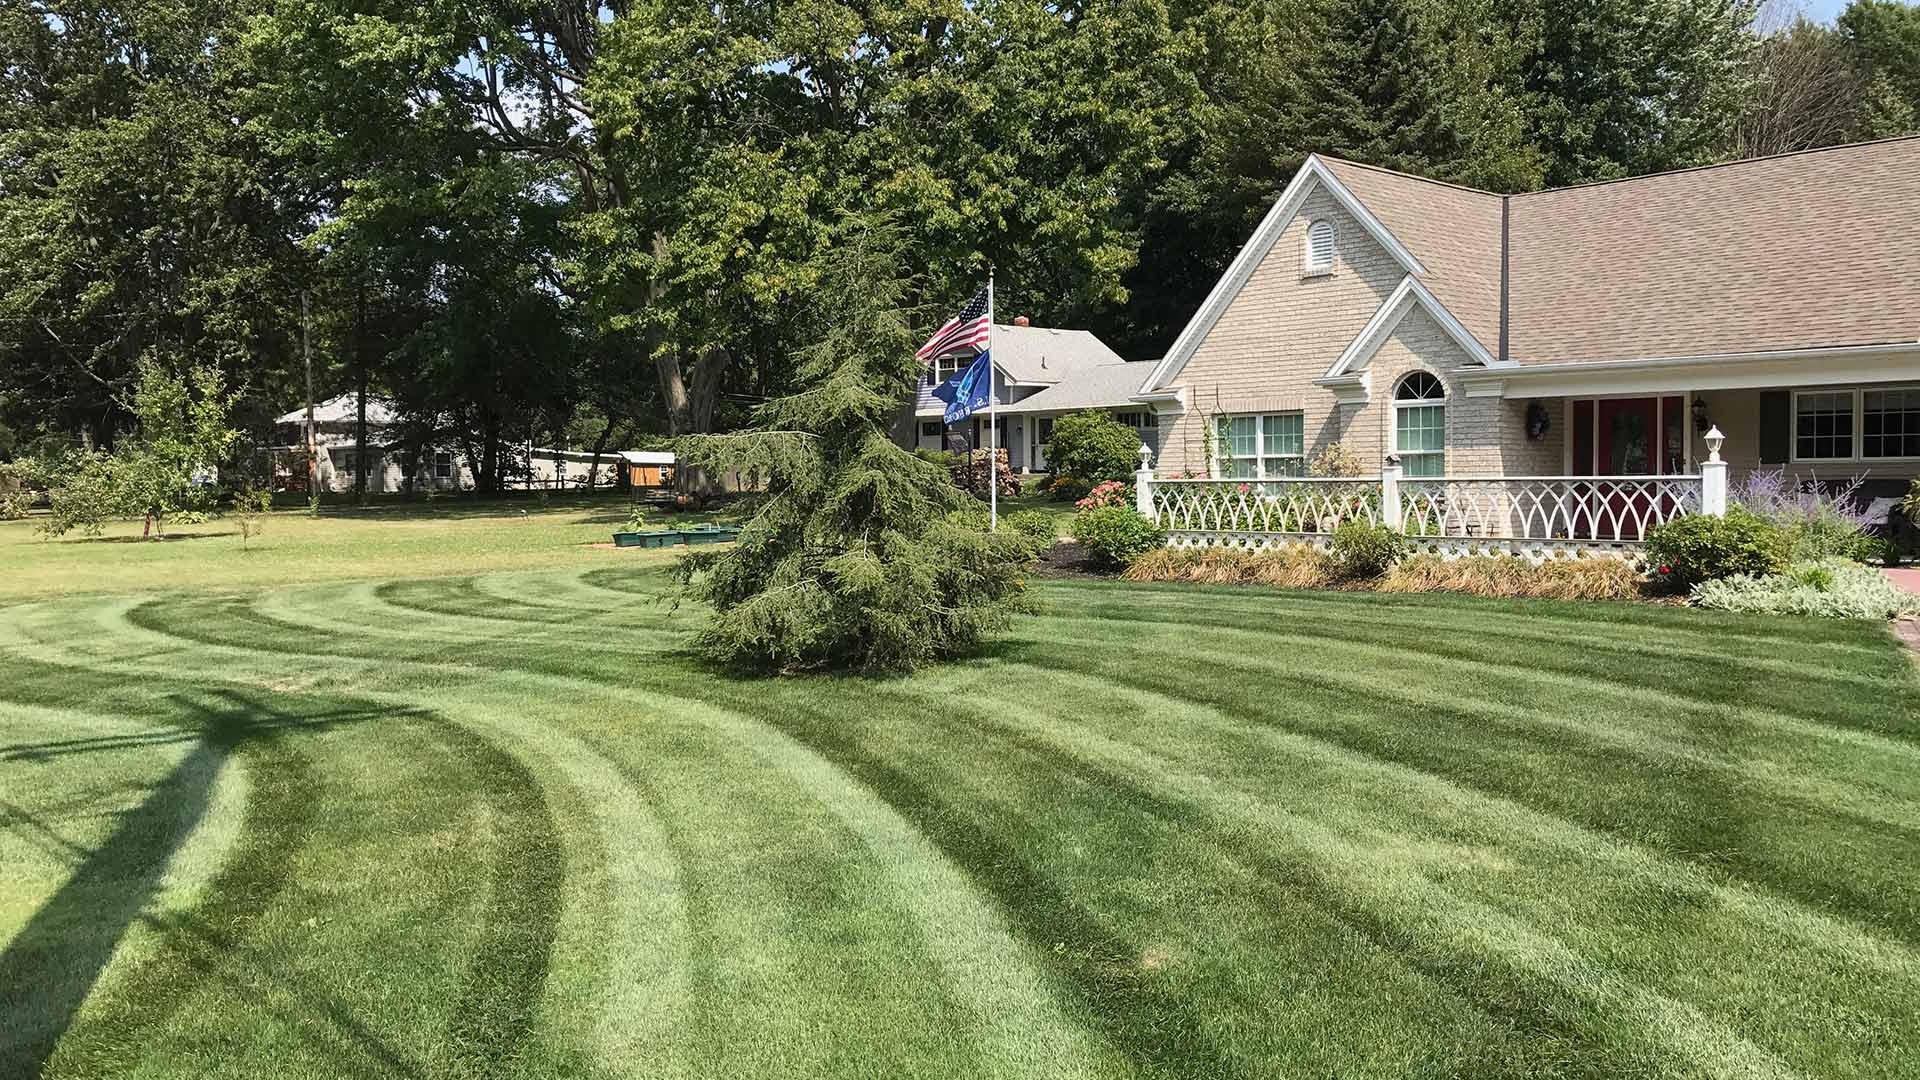 Mowing stripes in a well-maintained Geneva lawn.